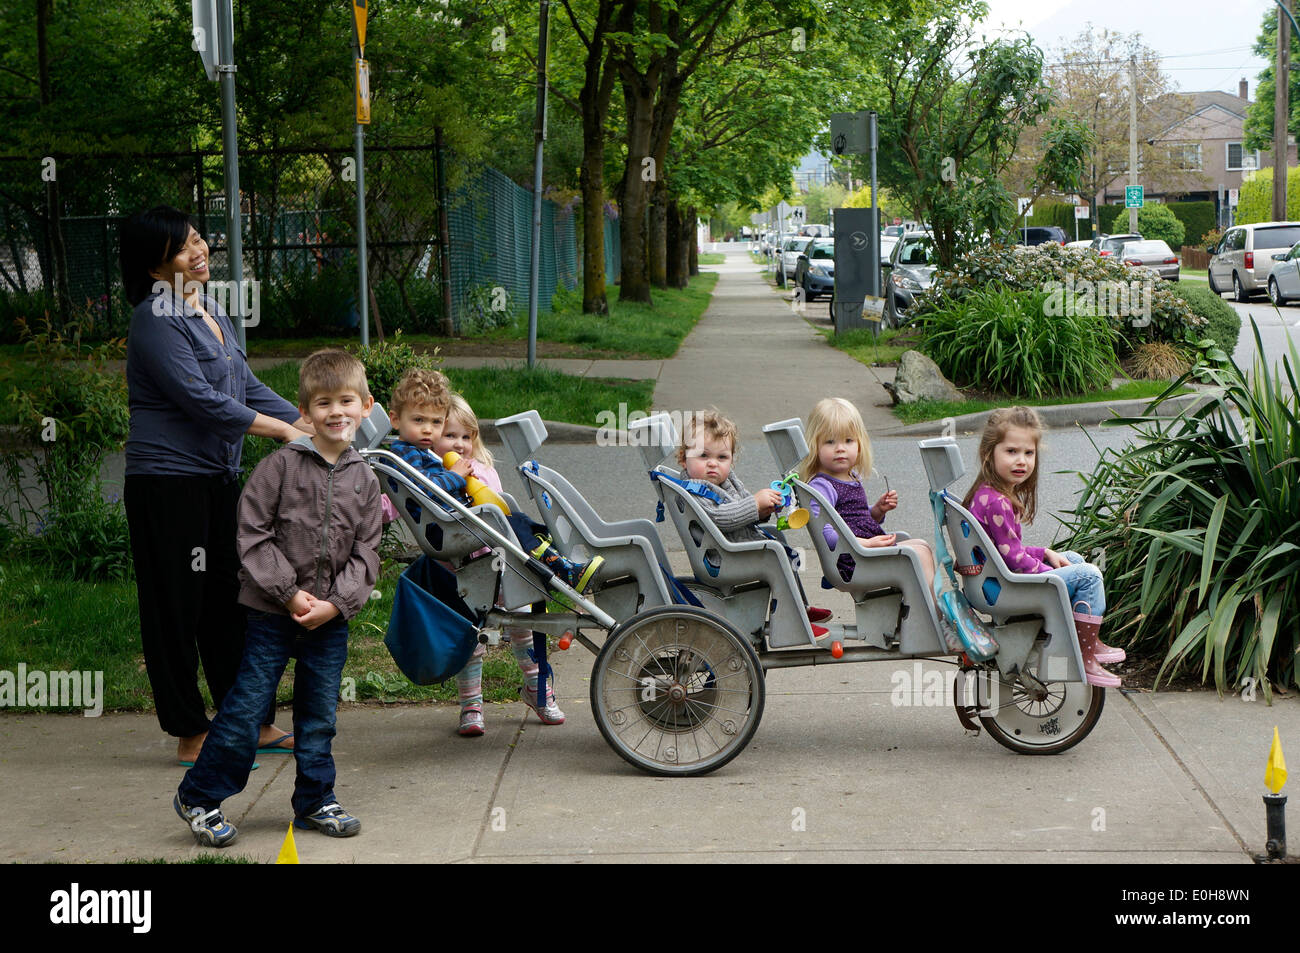 Asian nanny pushing a multi-seat, multi-child stroller, Vancouver, BC, Canada - Stock Image